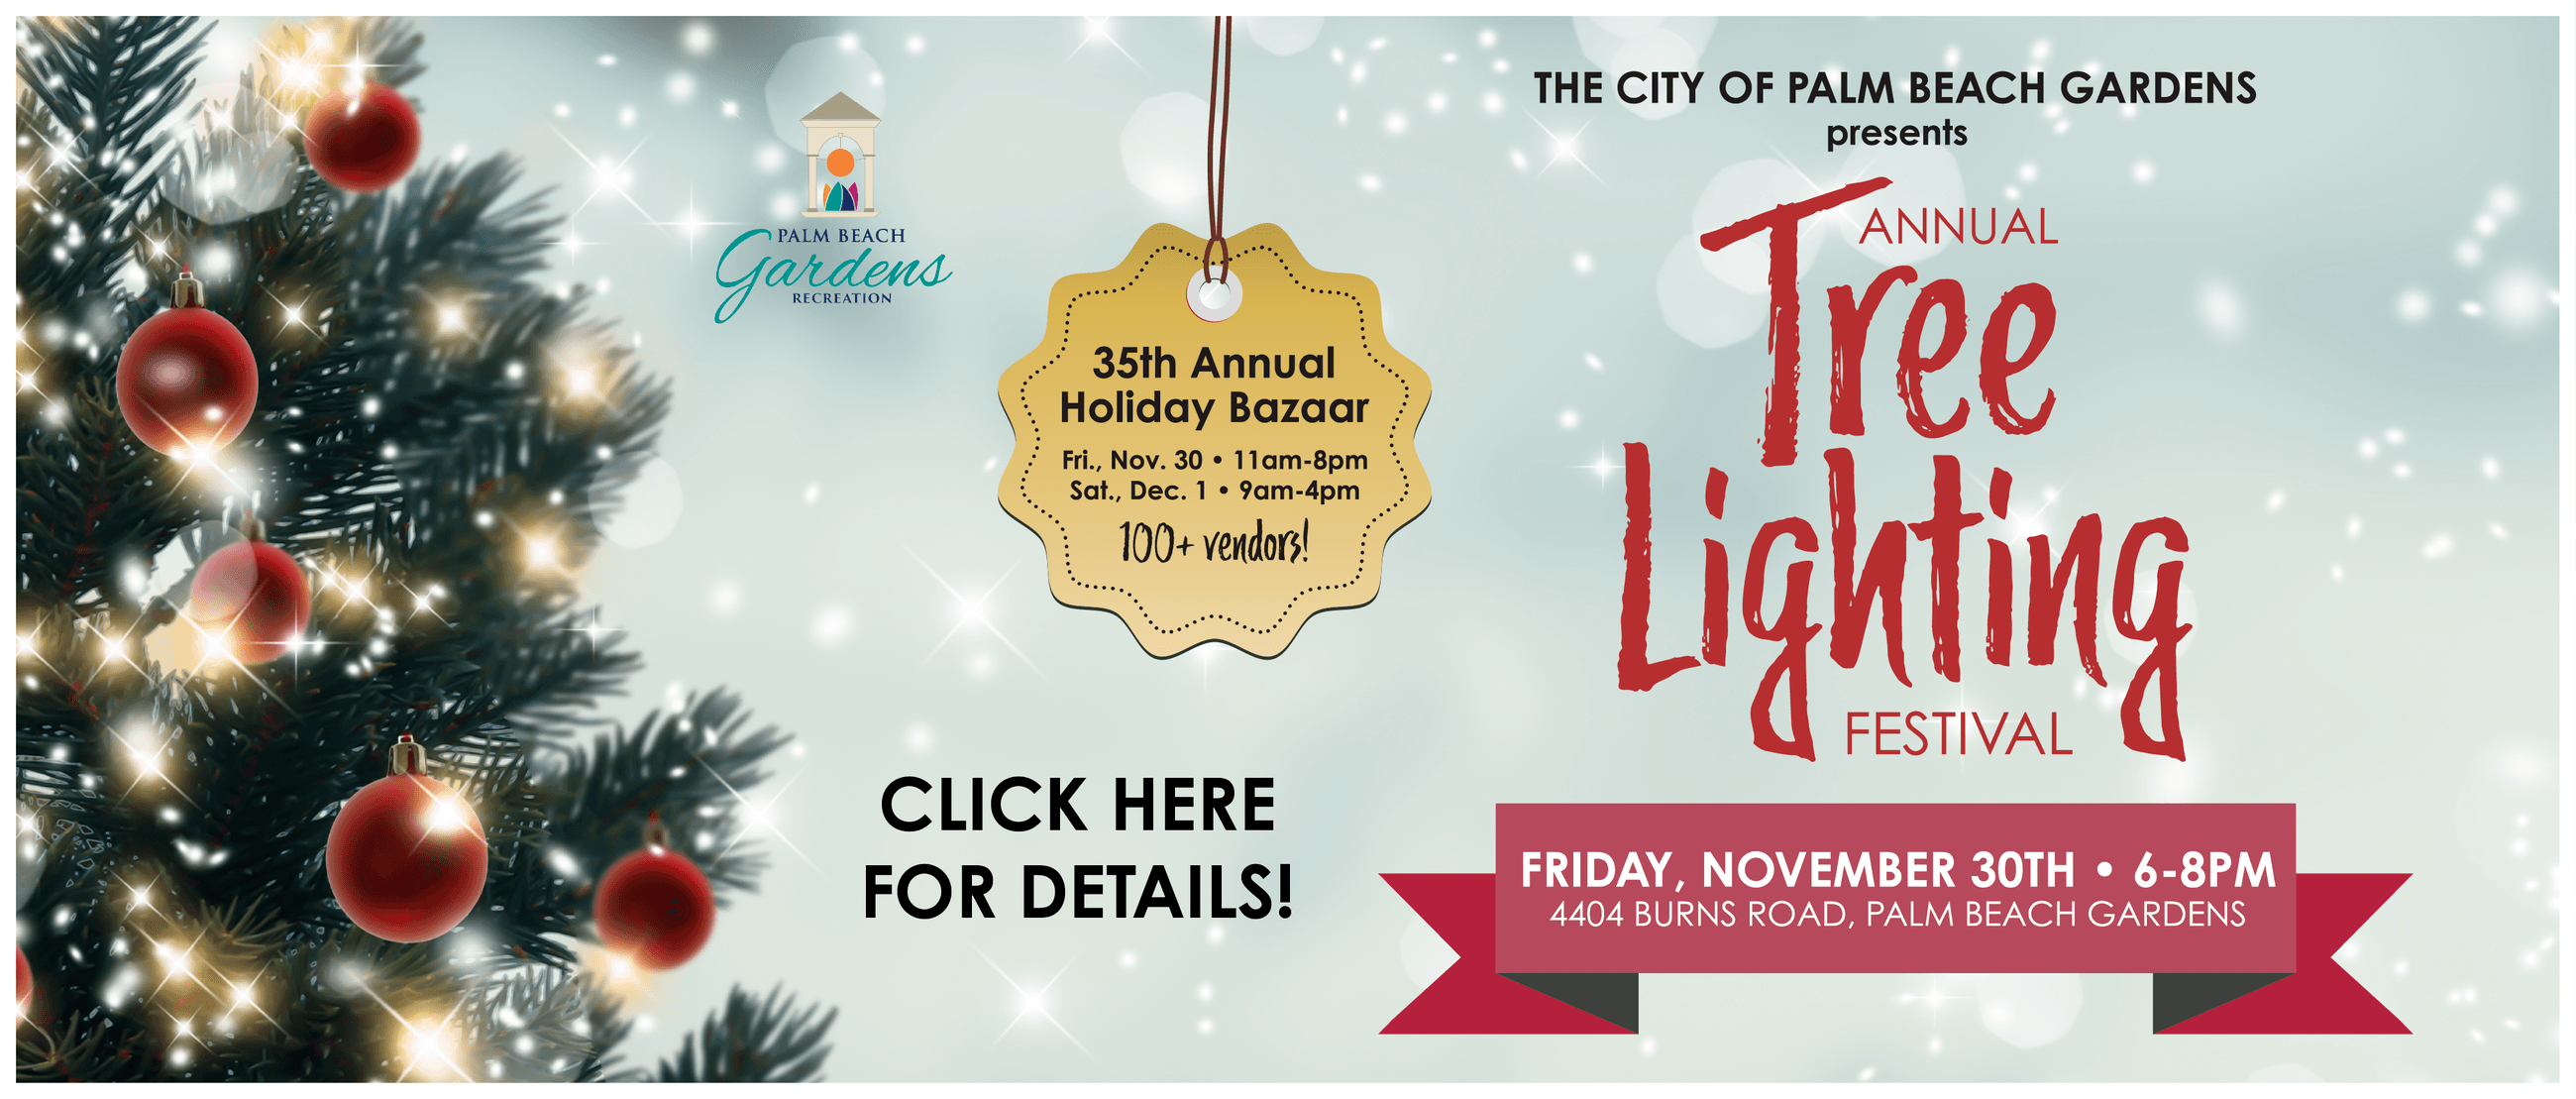 Click here for information on the 2018 Annual Tree Lighting event